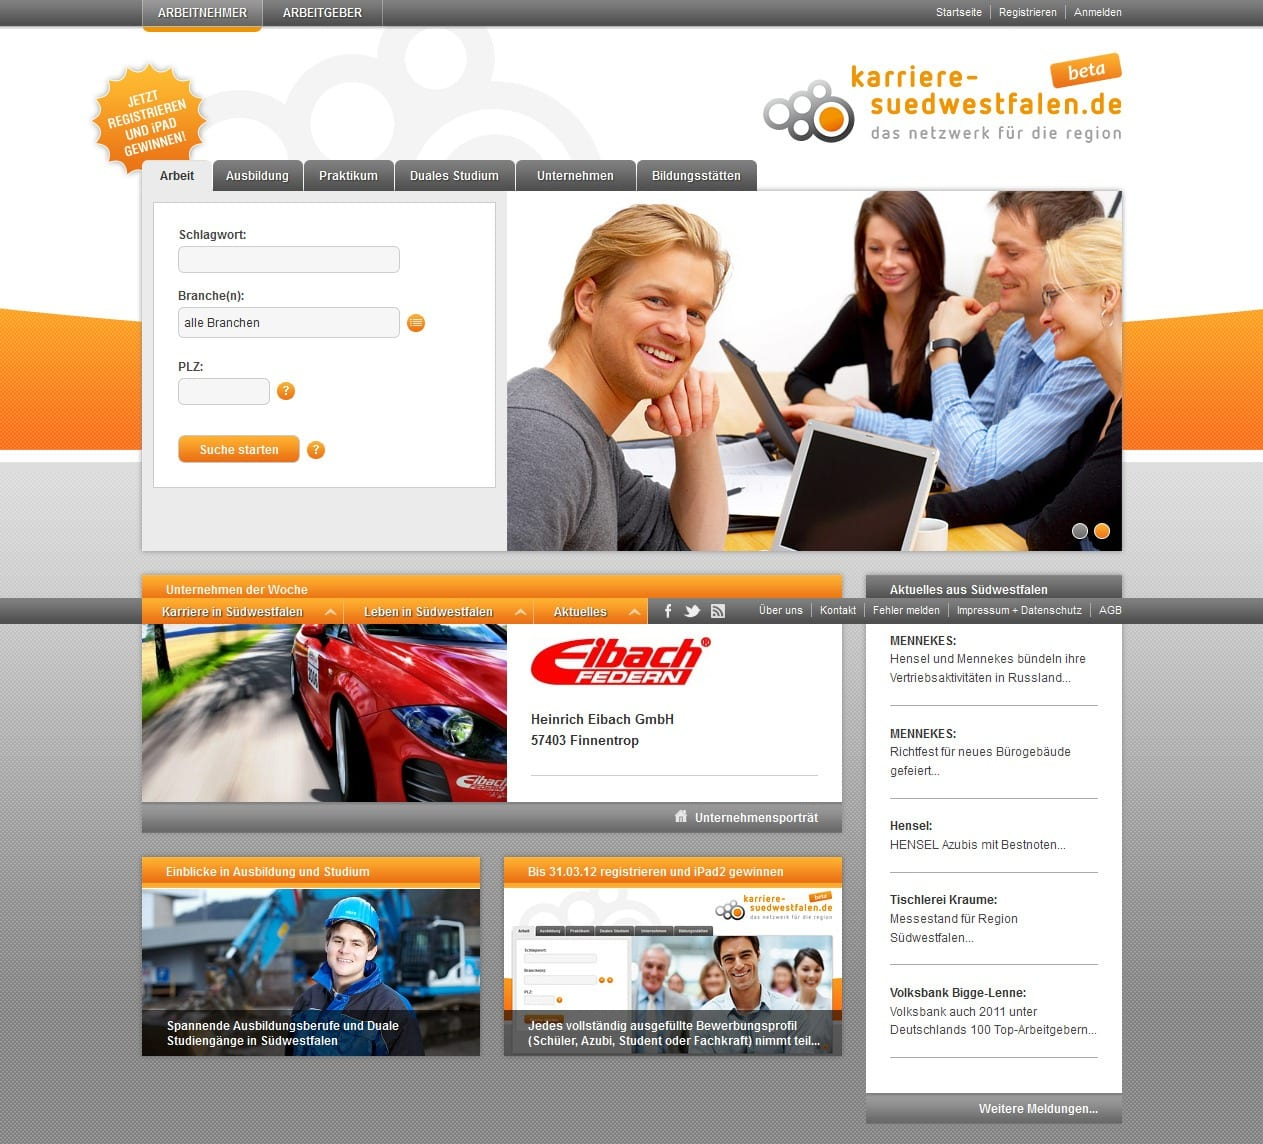 Webportal Karriere in Südwestfalen